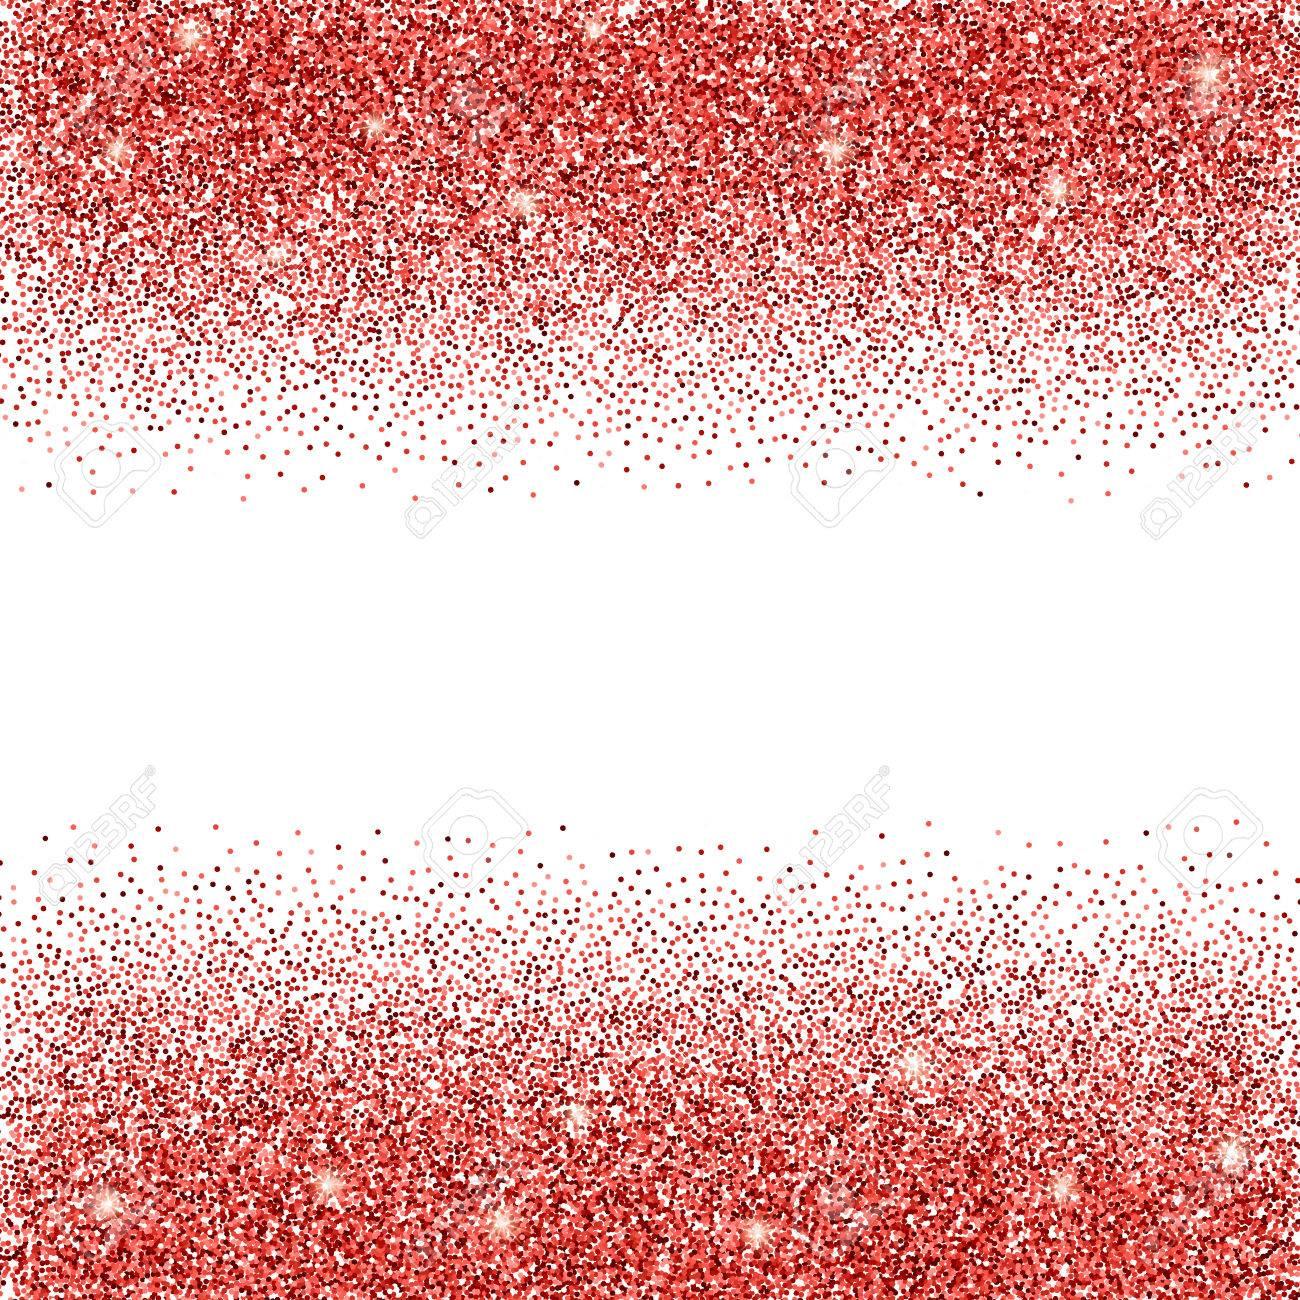 Red Glitter Background Rot Funkelt Auf Weissem Hintergrund Kreative